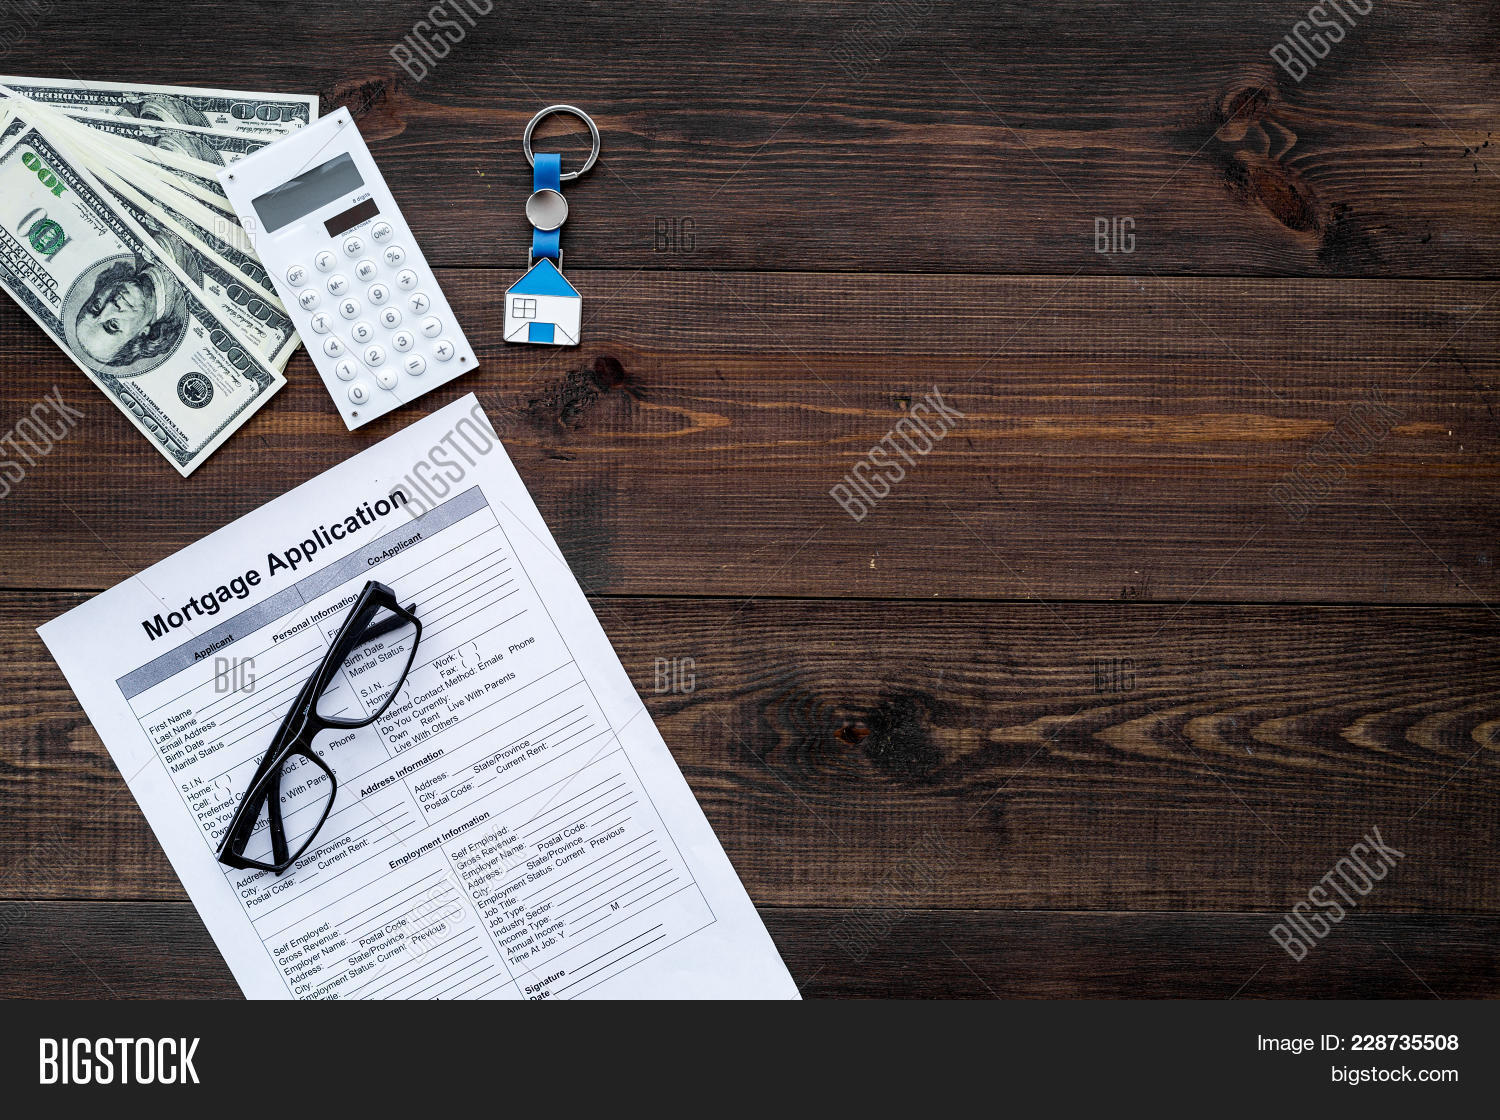 Housing Loan  Mortgage Image & Photo (Free Trial) | Bigstock